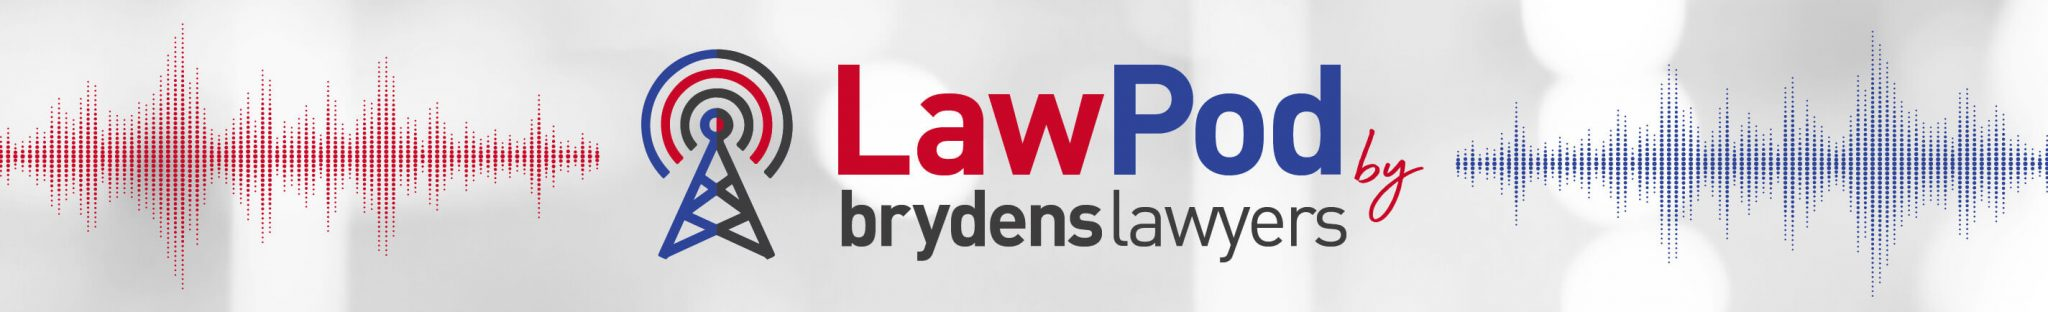 , I'm Injured Why Should I Contact a Lawyer Featuring Tanya To, Brydens Lawyers